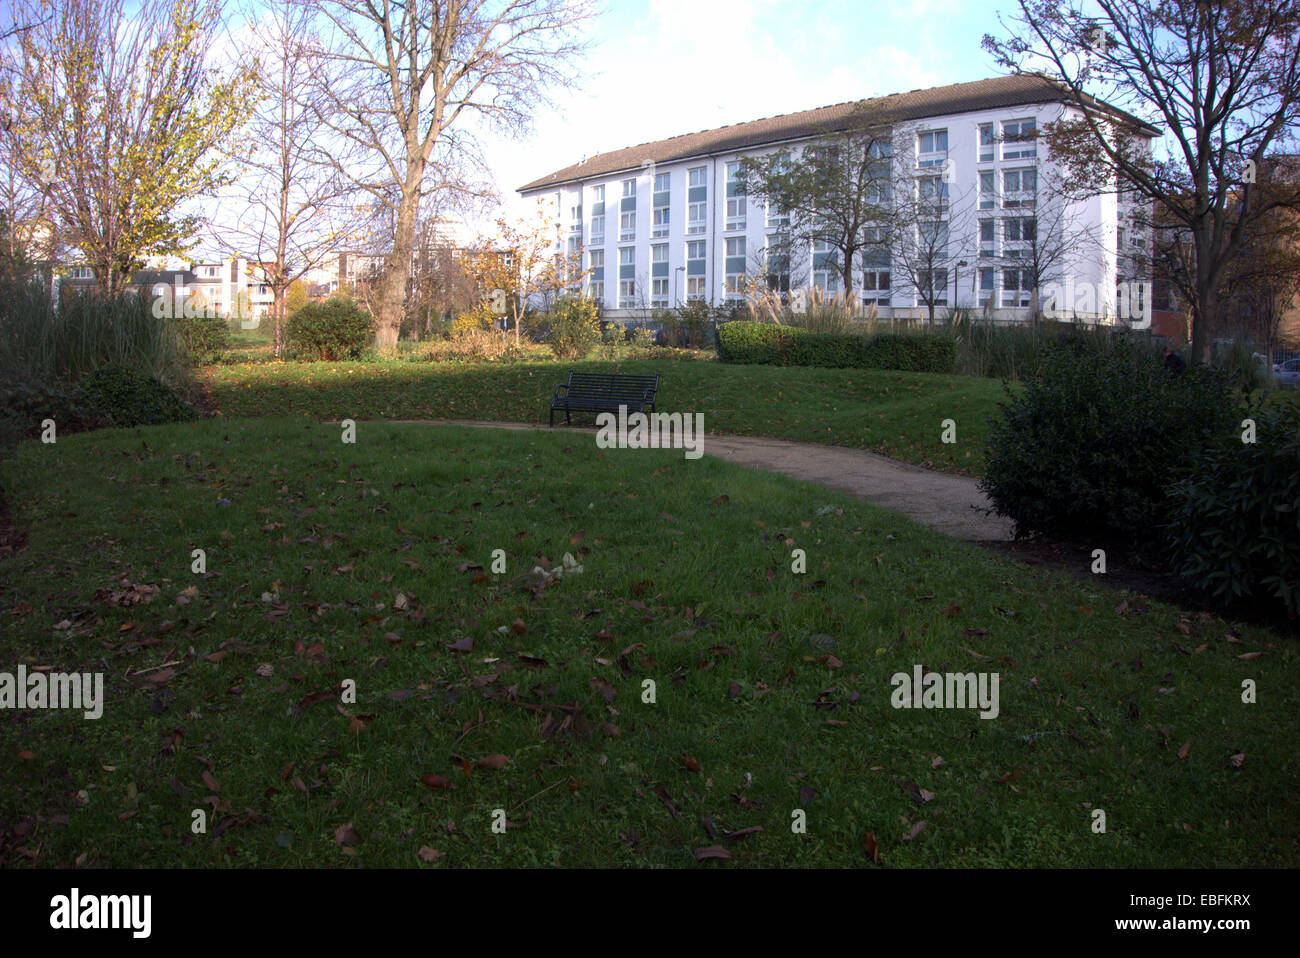 Some Of The Social Housing Around North Norland Park London W11 Stock Photo Alamy